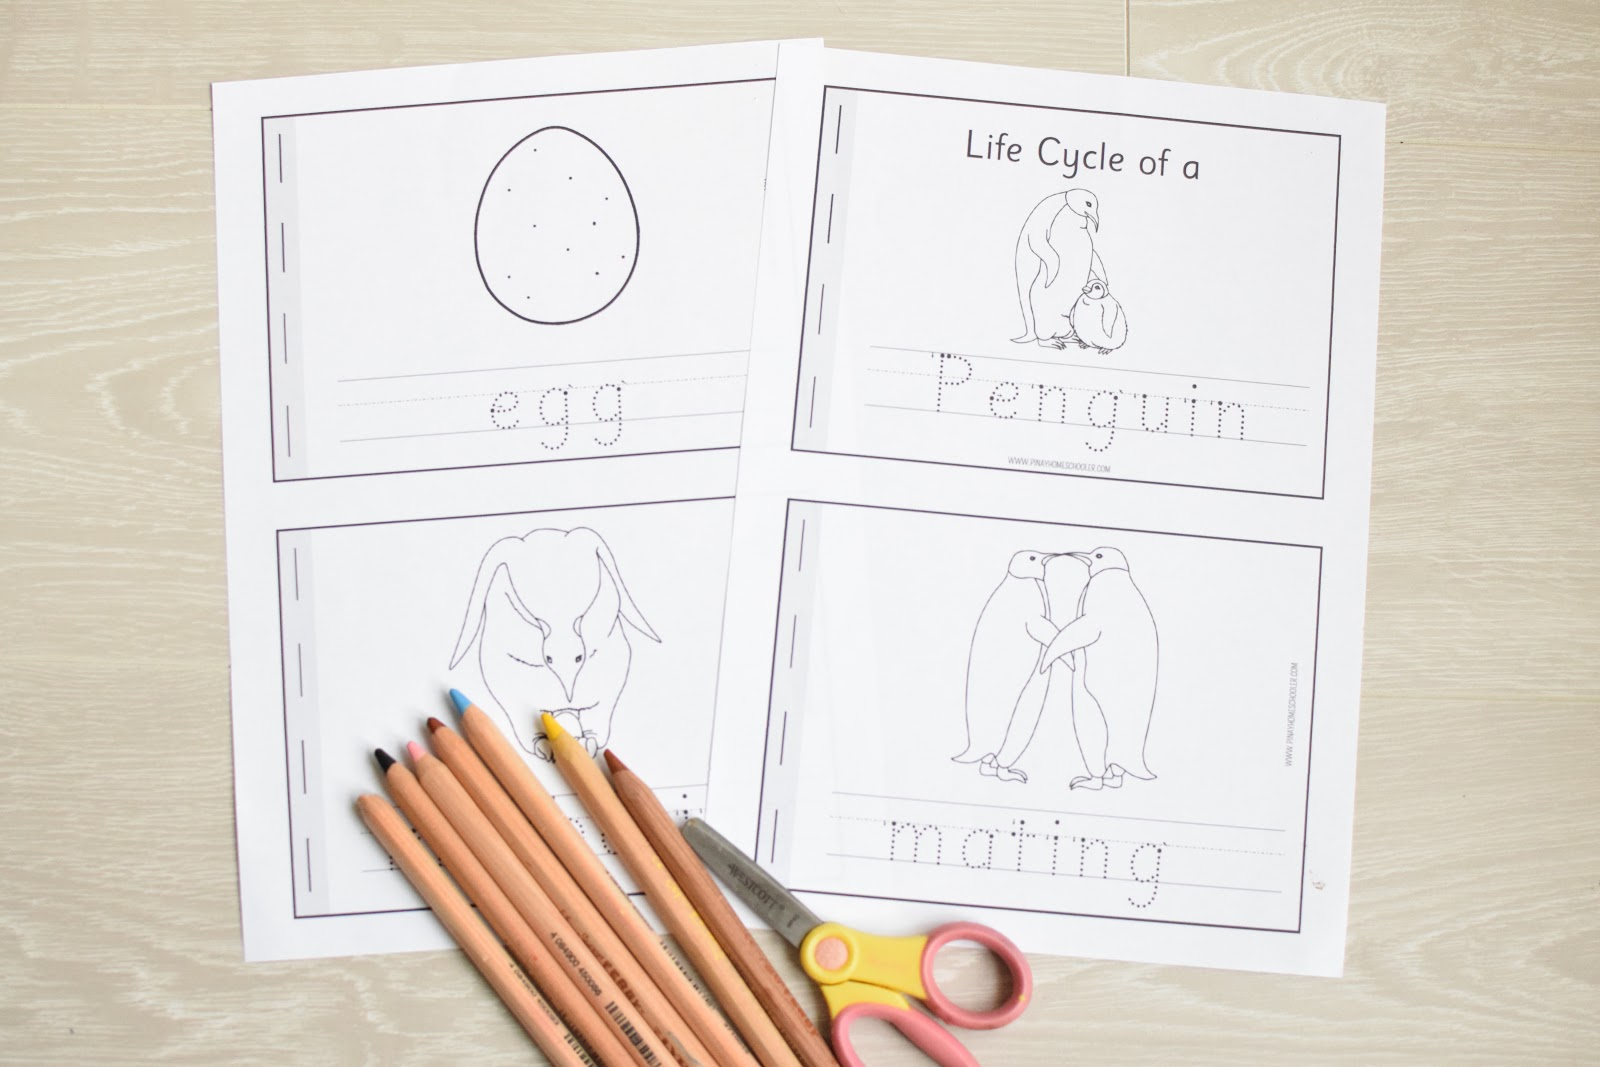 Life Cycle Learning Activity Packs